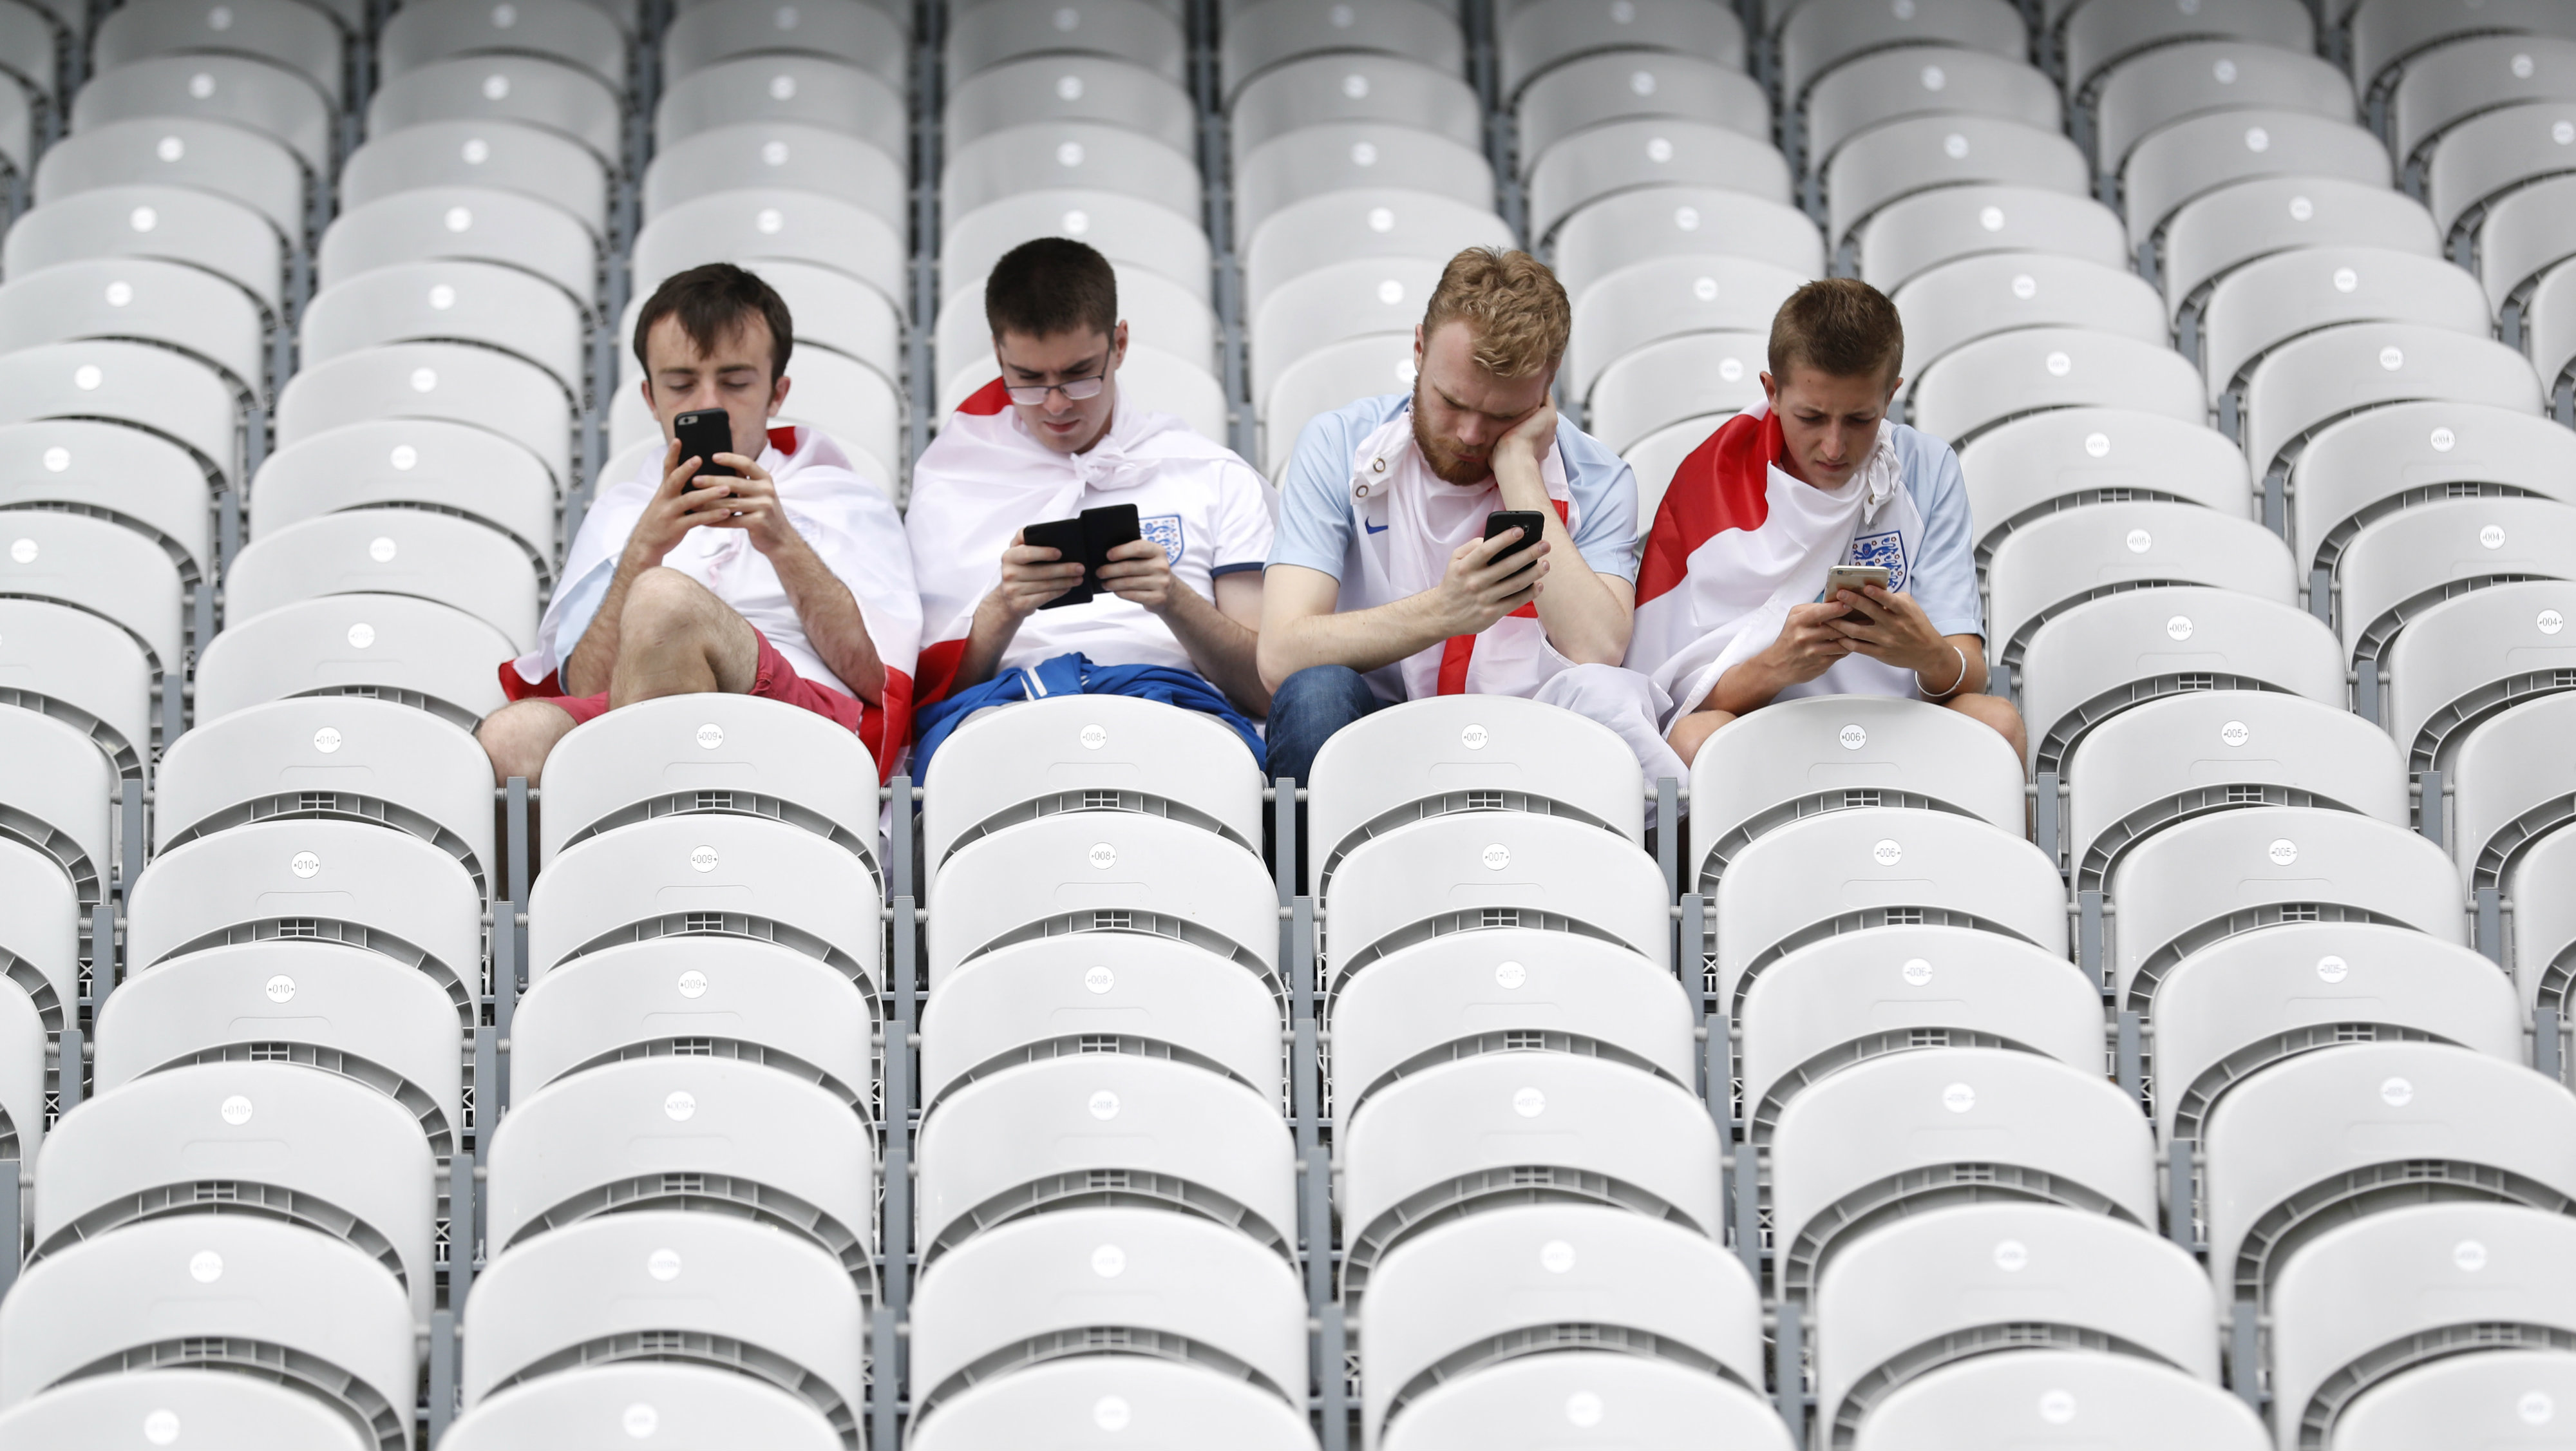 Football Soccer - England v Wales - EURO 2016 - Group B - Stade Bollaert-Delelis, Lens, France - 16/6/16 England fans use their phones before the game REUTERS/Carl Recine Livepic